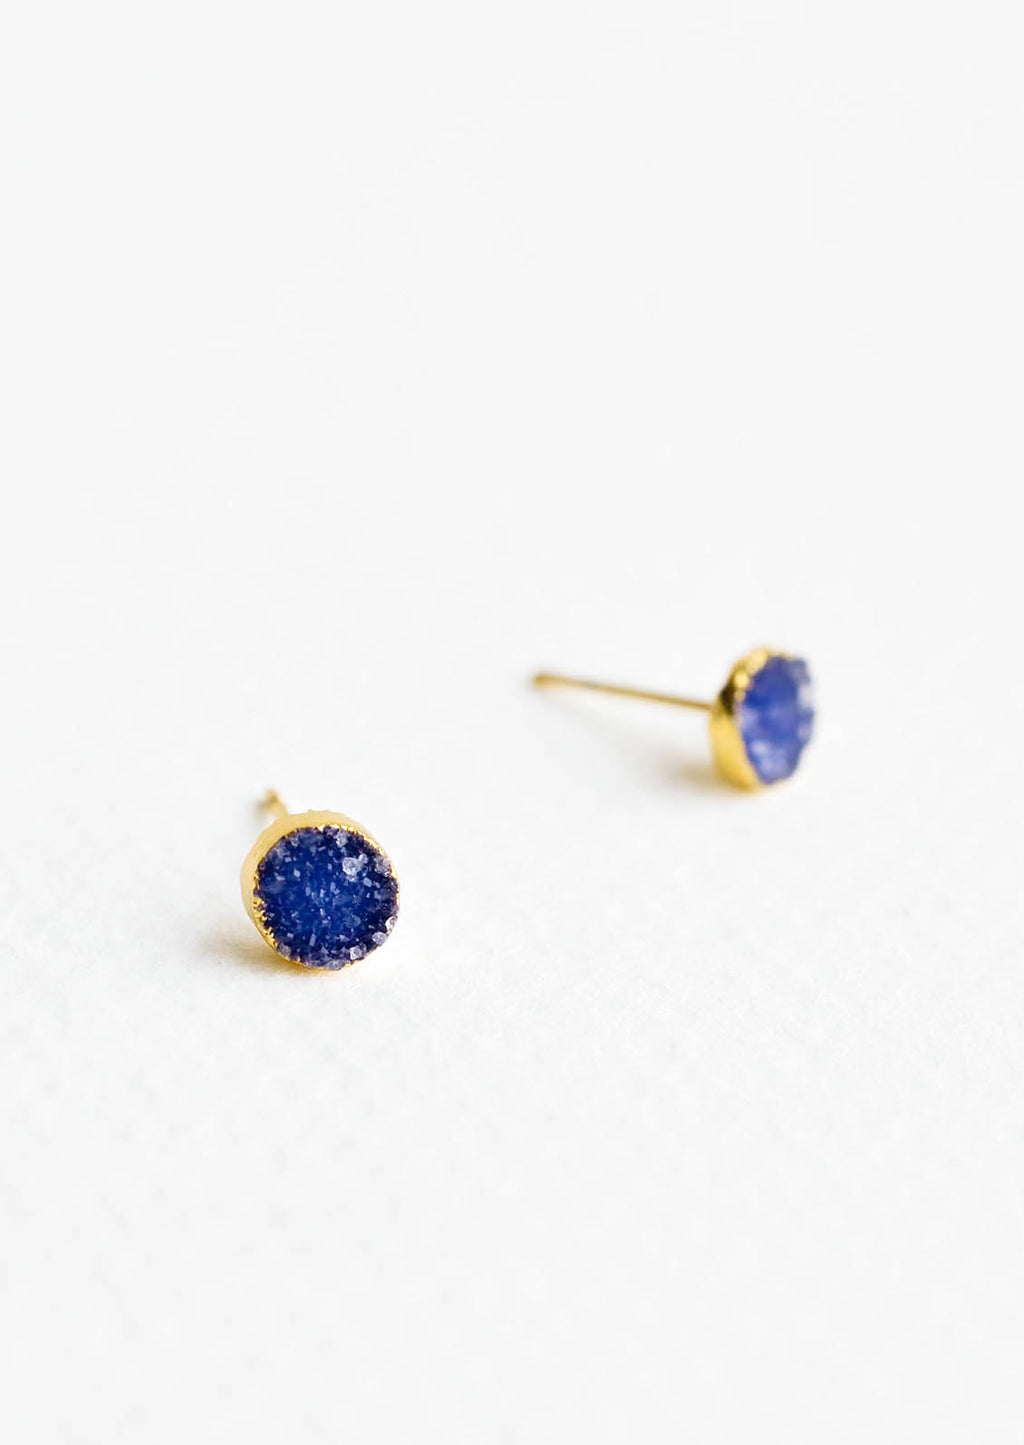 Neptune: Textured blue gemstone studs with gold surround.